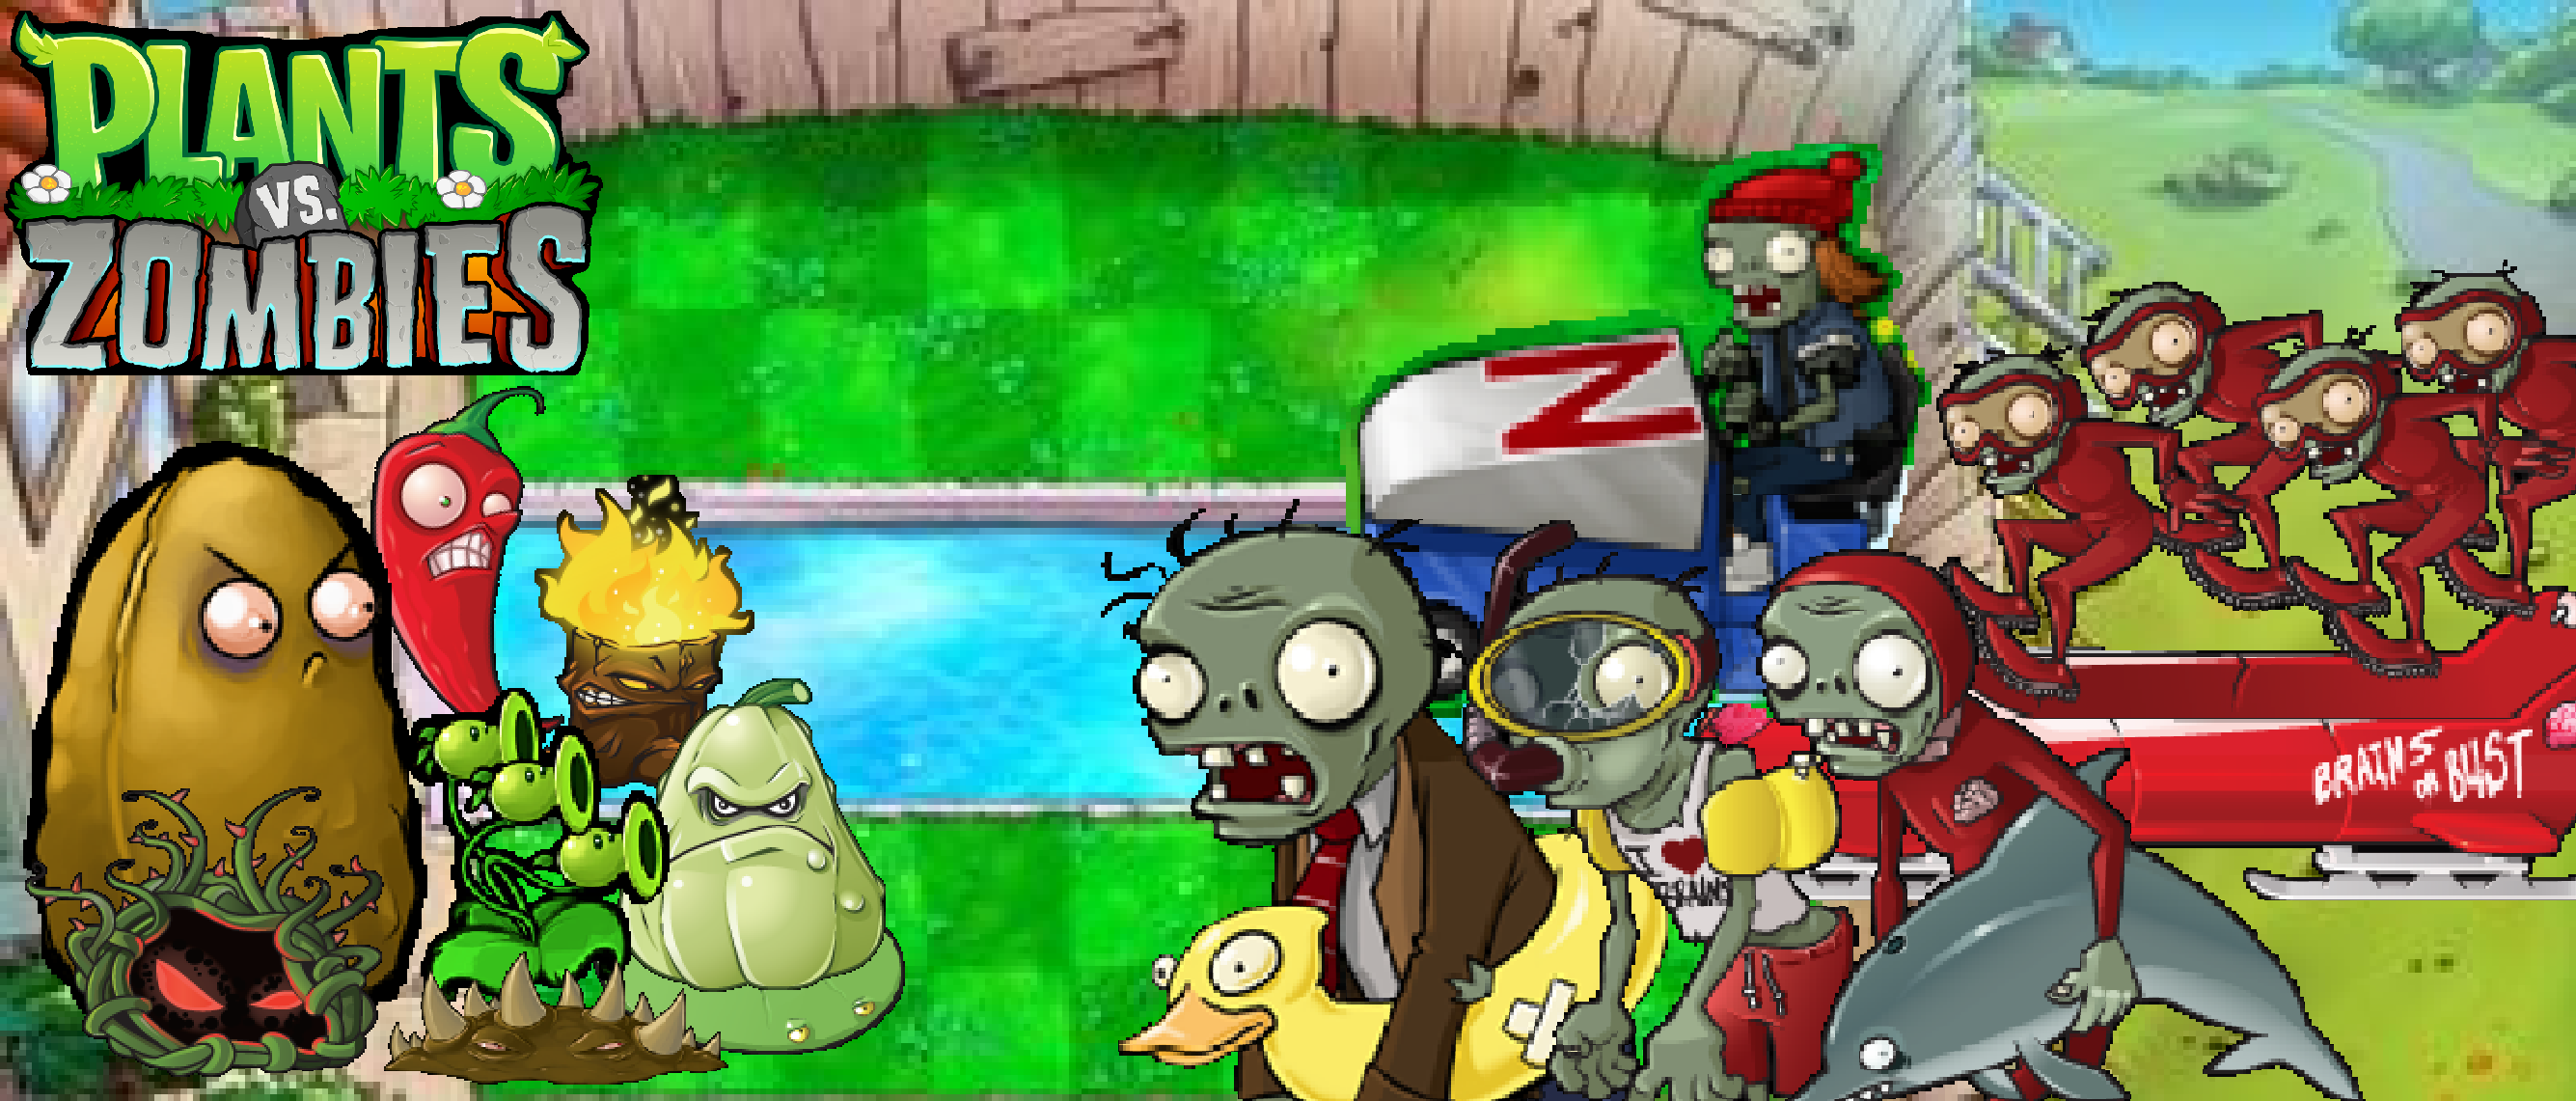 plants vs zombies pool wallpaperphotographerferd on deviantart